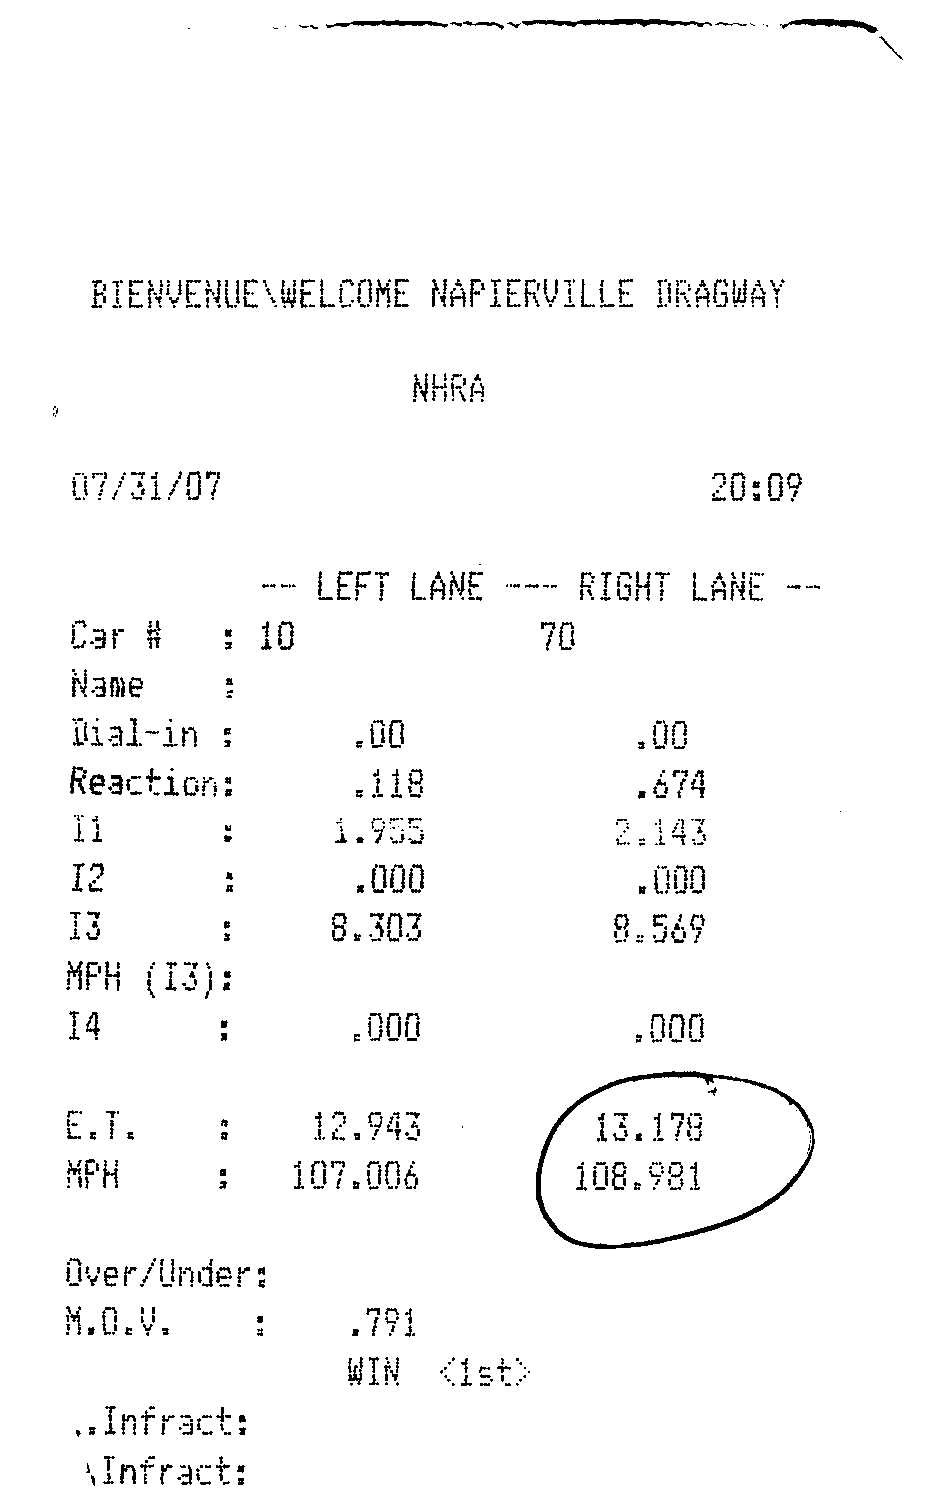 Plymouth Satellite Timeslip Scan